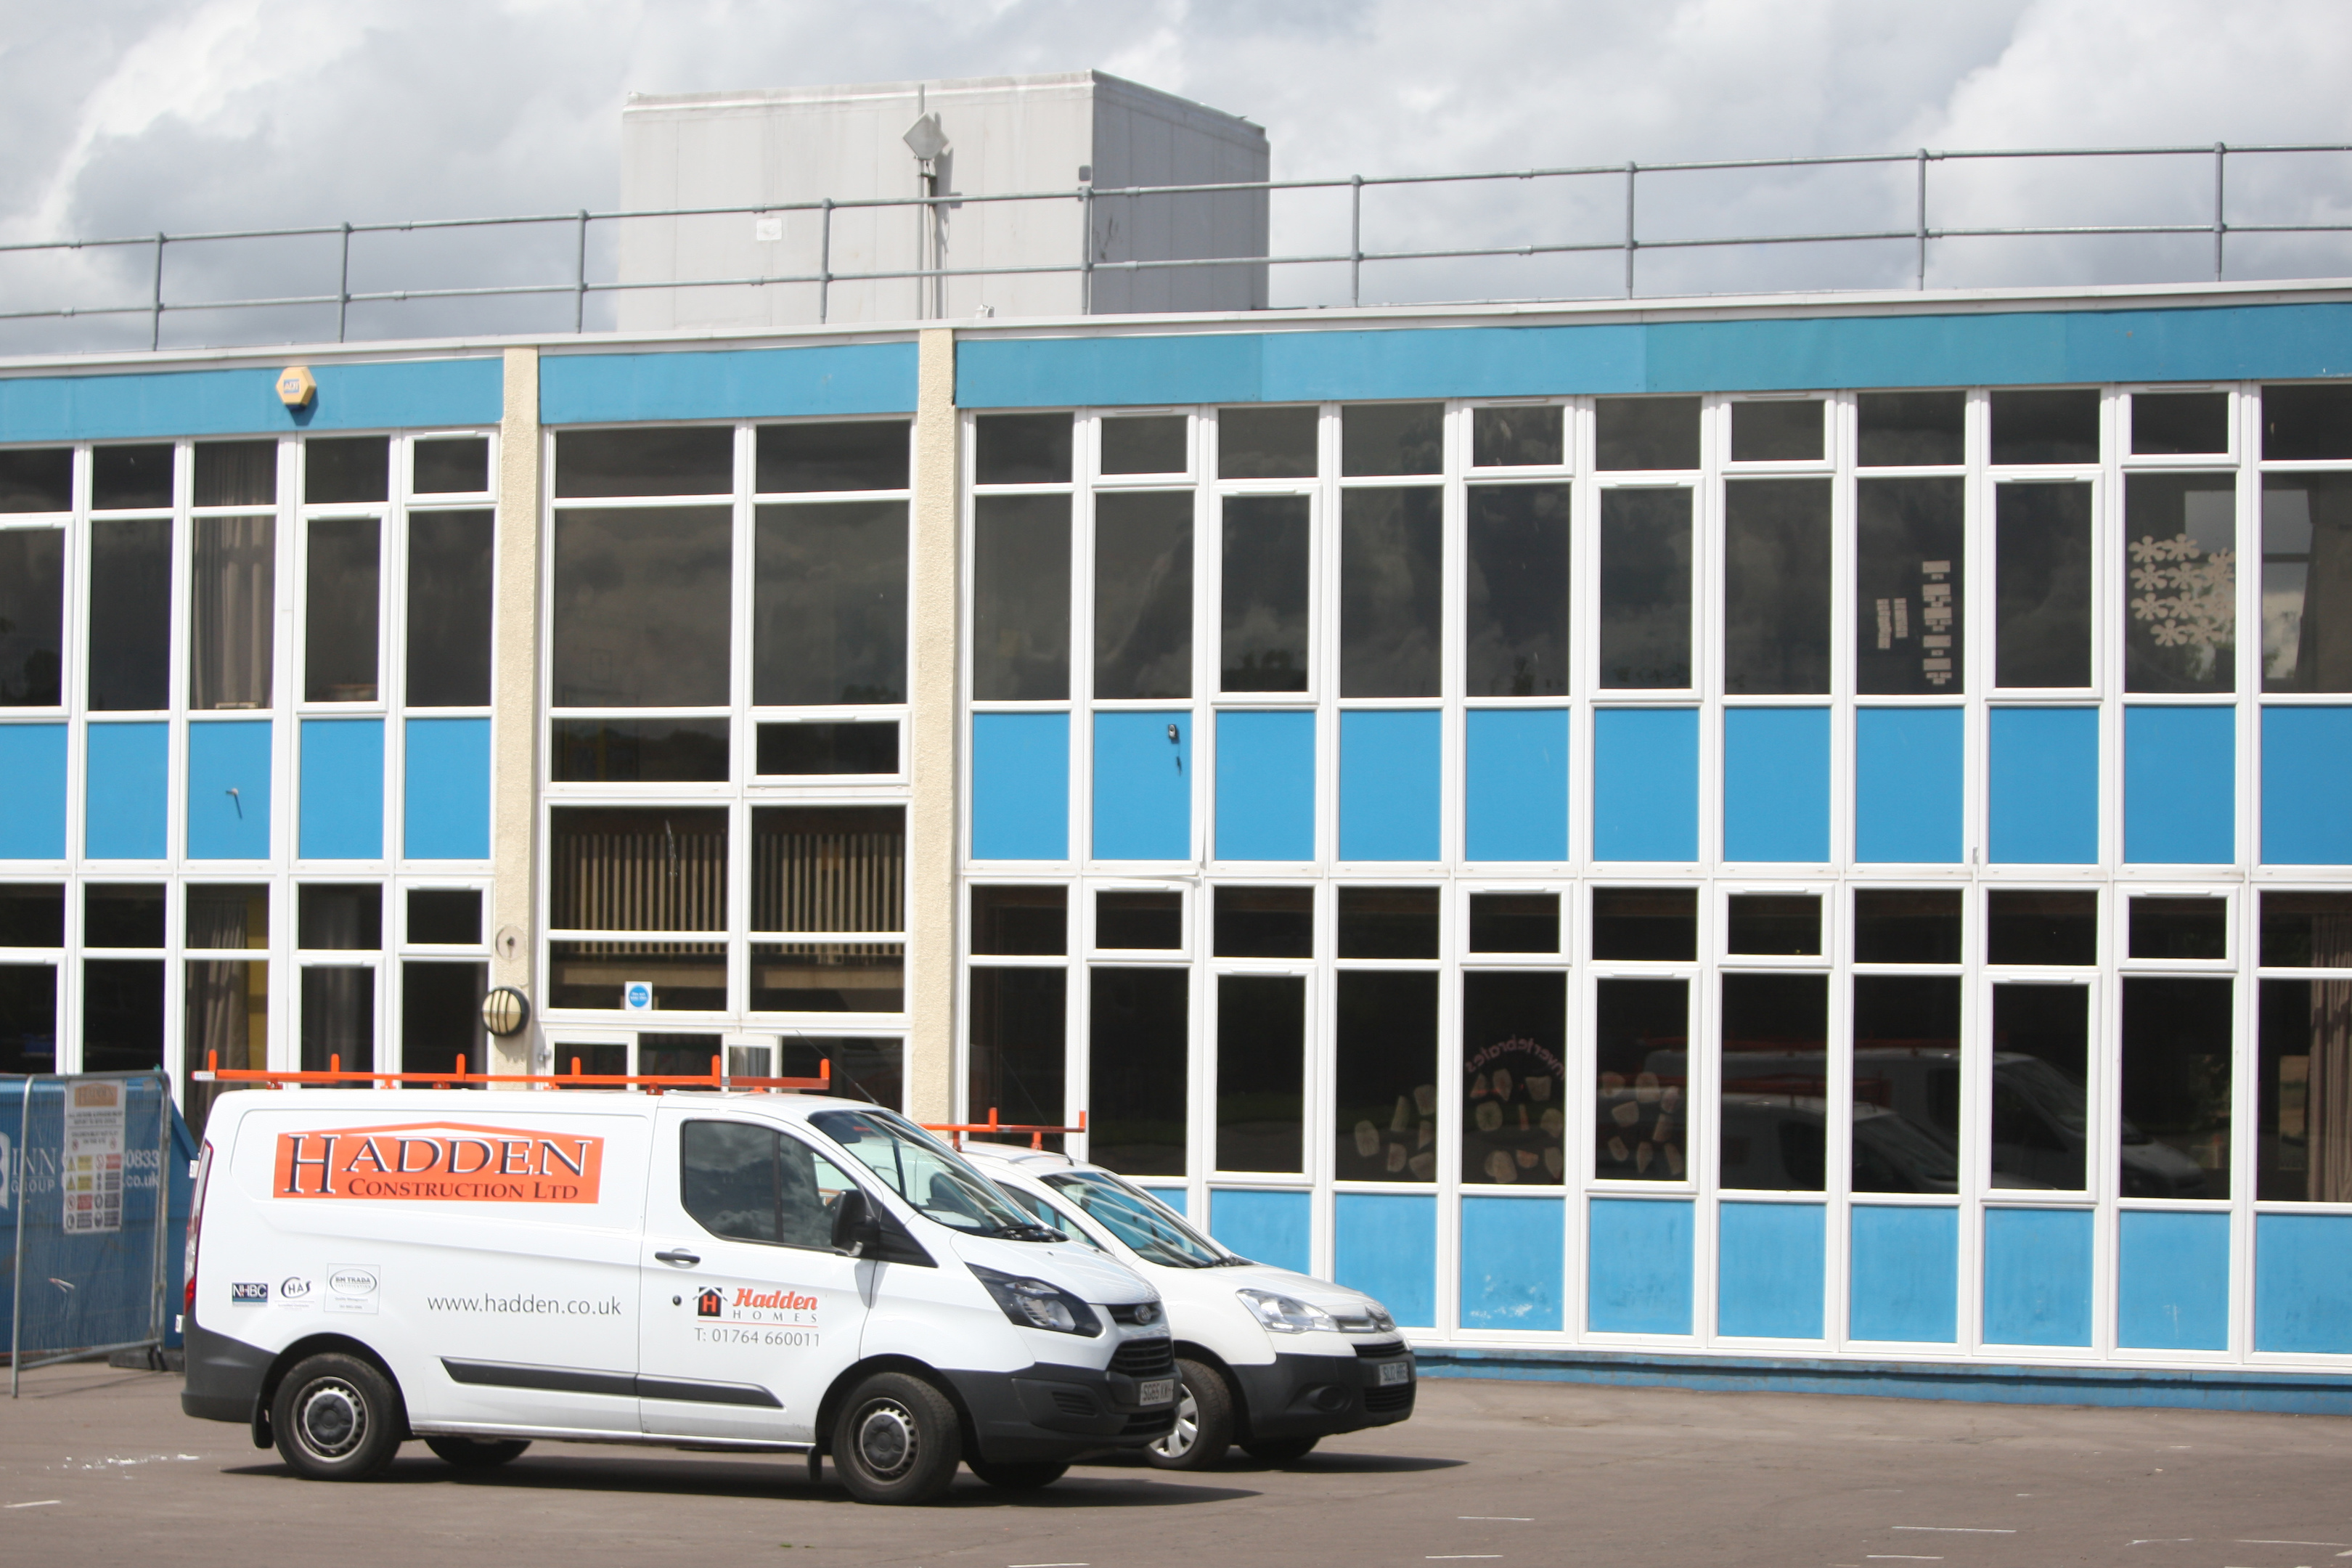 Repairs at Our Lady's were completed at the weekend, with pupils returning to classrooms on Tuesday.